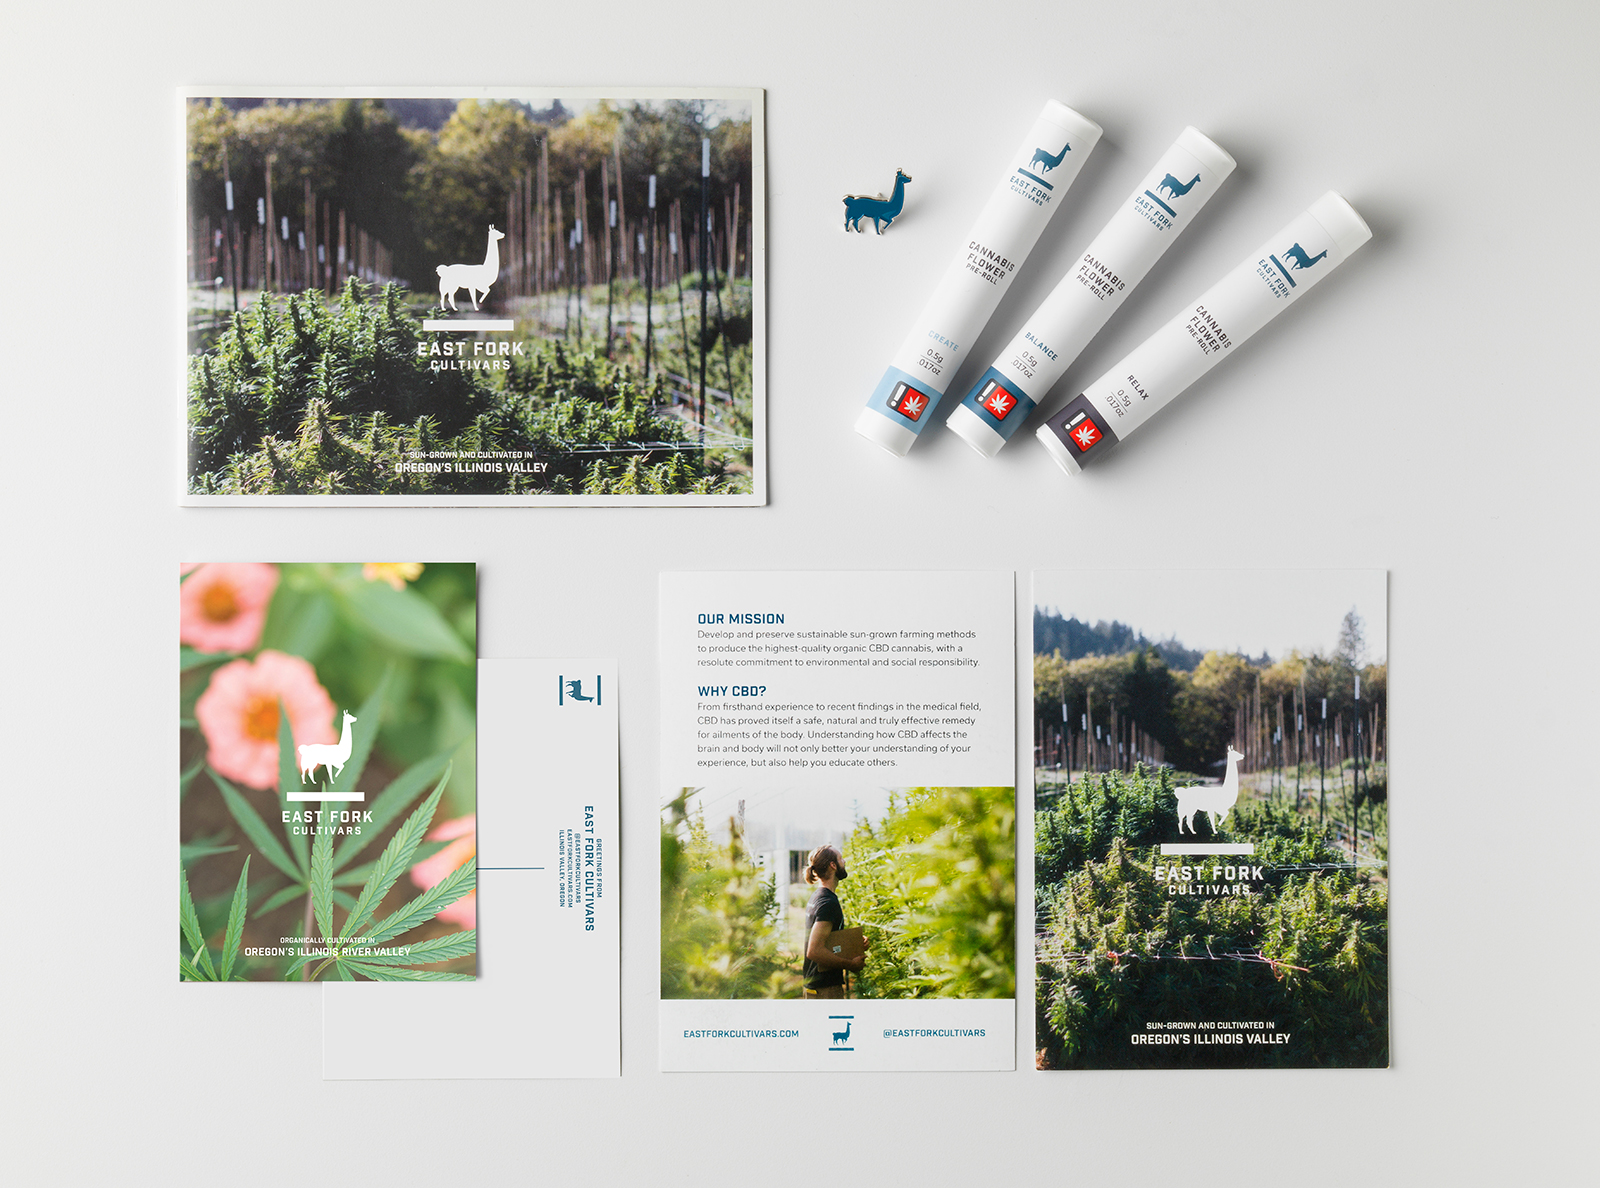 A collection of printed materials. A large card showing the plants on the farm with the white East Fork logo overtop; a blue enamel llama pin; three pre-rolls; the front and back of an informational card with a photo of the farm, stating Our Mission and Why CBD?; and the front and back of a postcard with a picture of cannabis leaves over pink flowers with the white East Fork logo overtop.